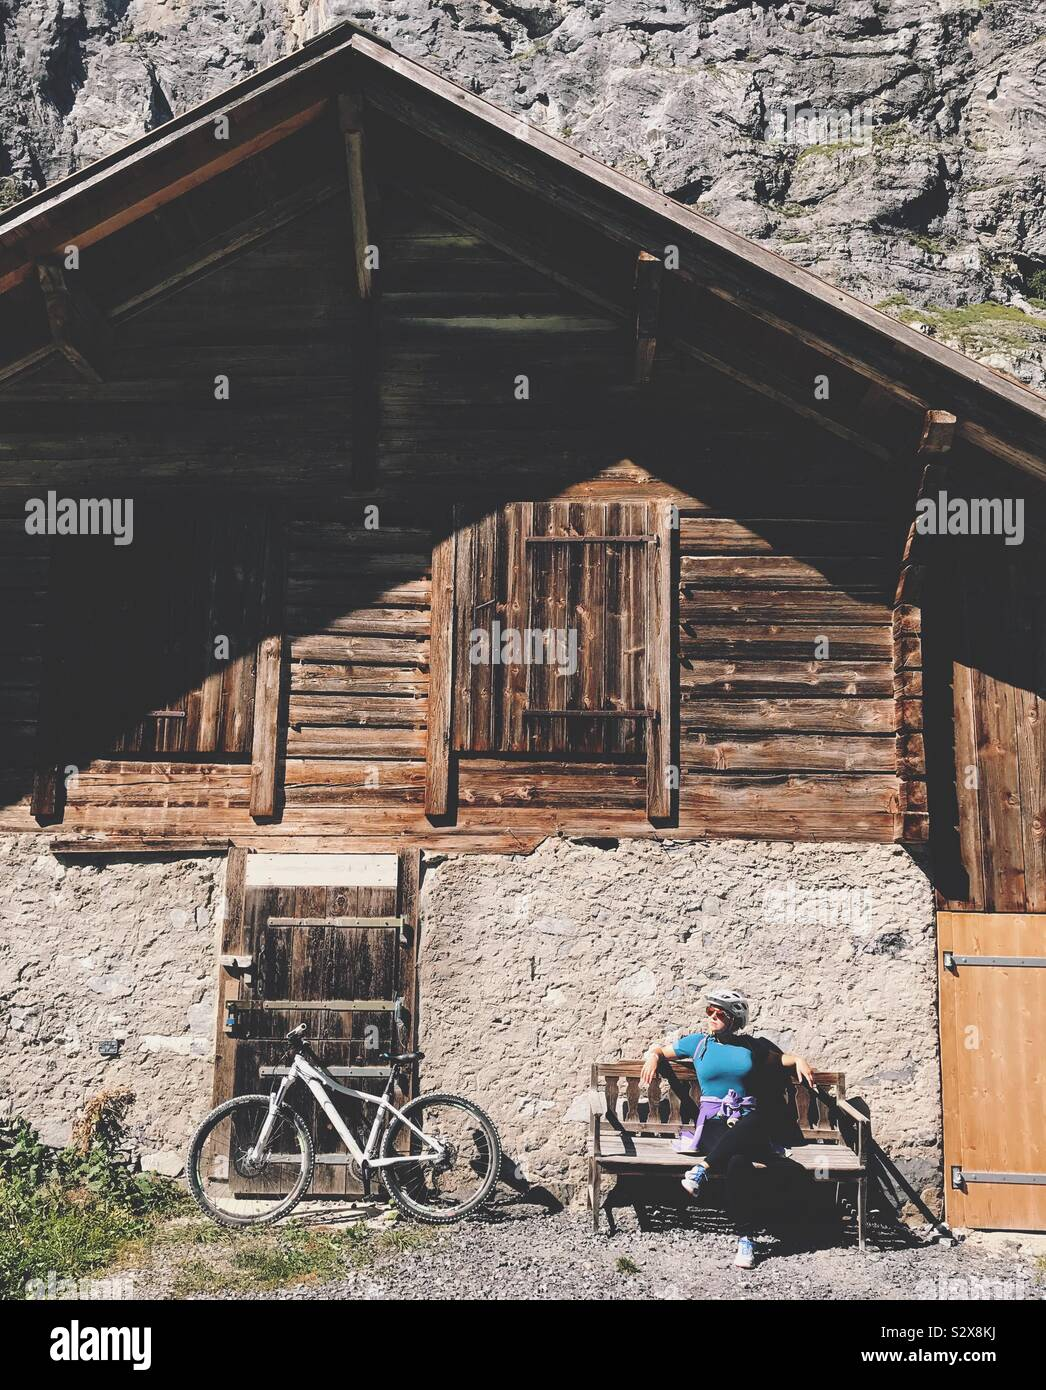 A girl with a bike sitting in front of a house in the mountain Stock Photo